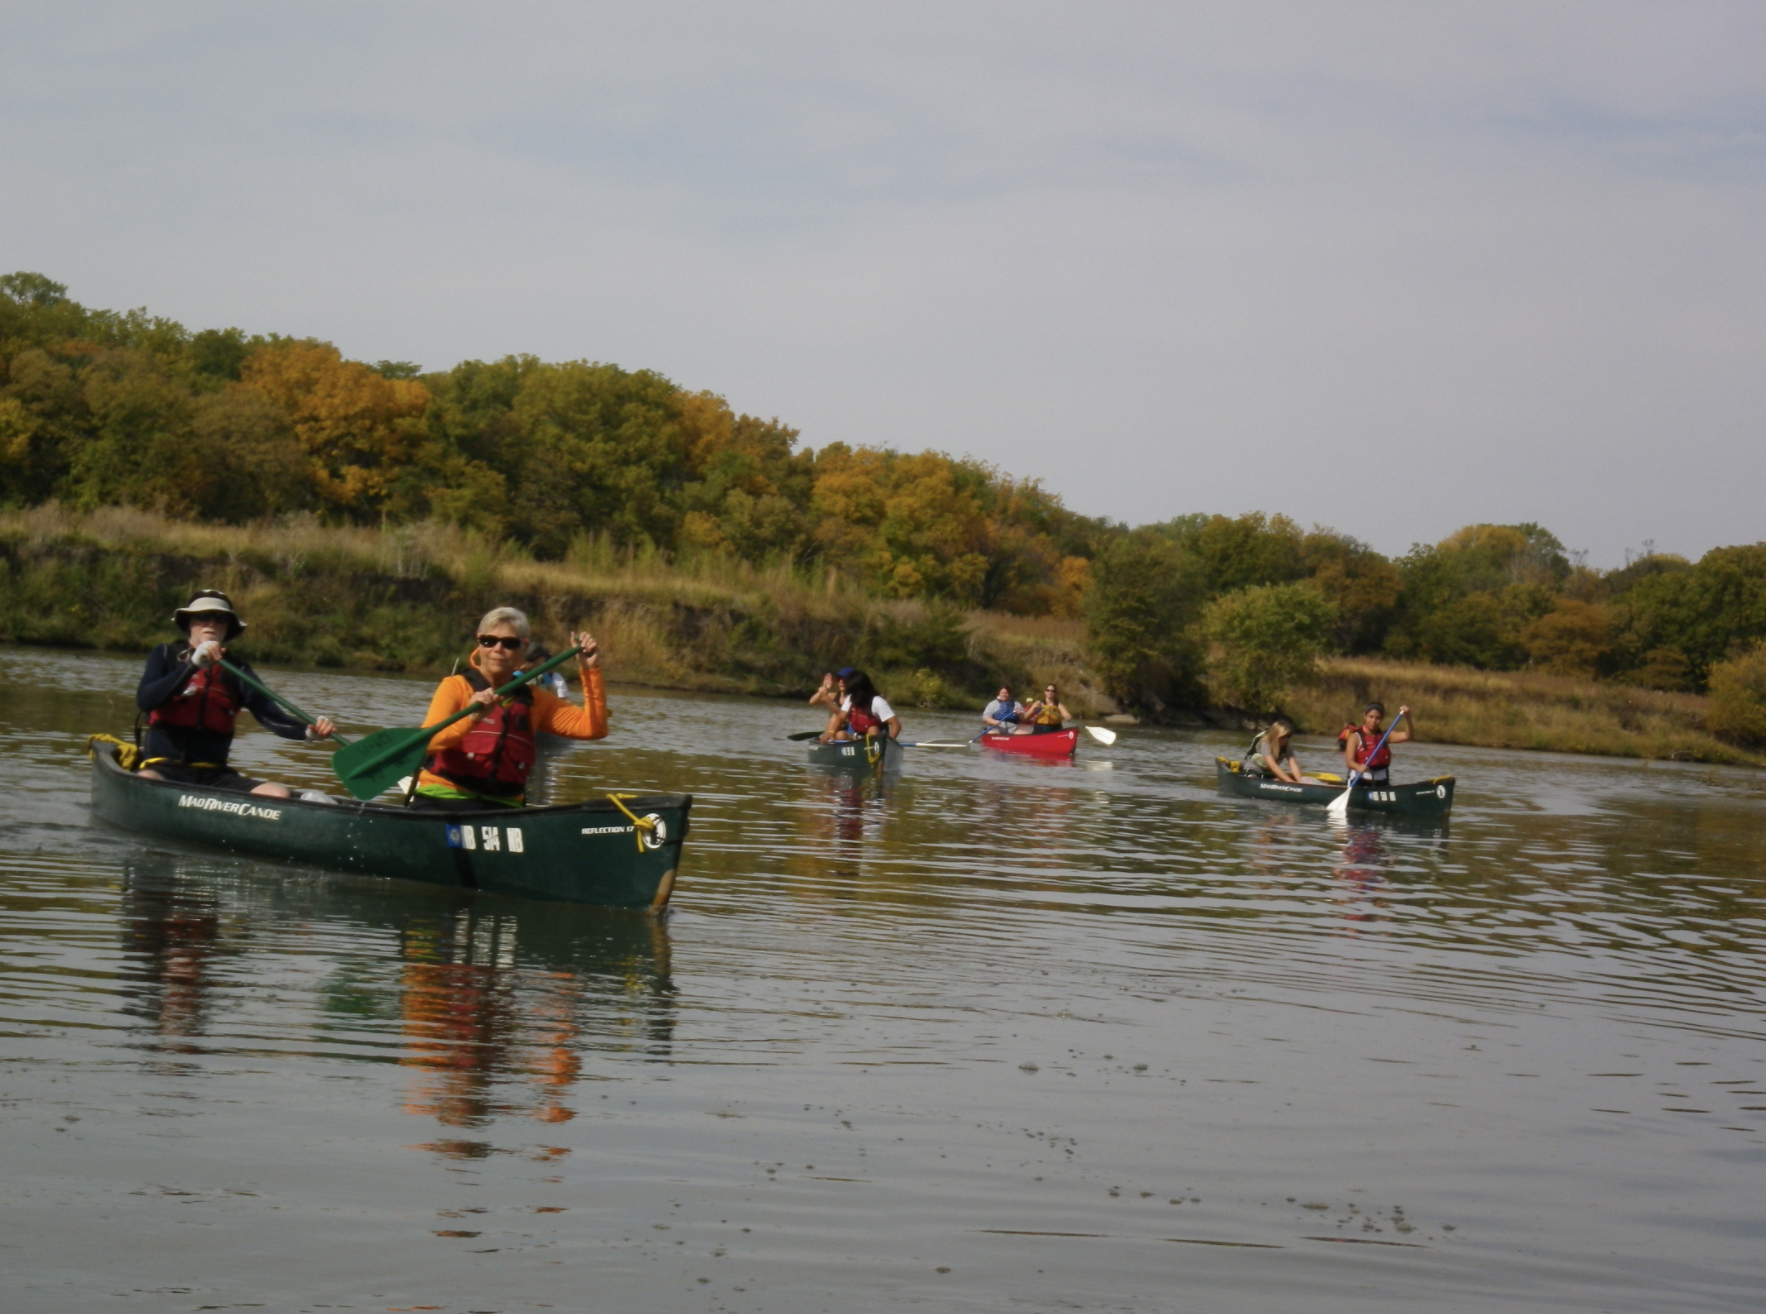 Outdoor Adventures is hosting a Lake Meet-Up on April 21 University of Nebraska-Lincoln students.